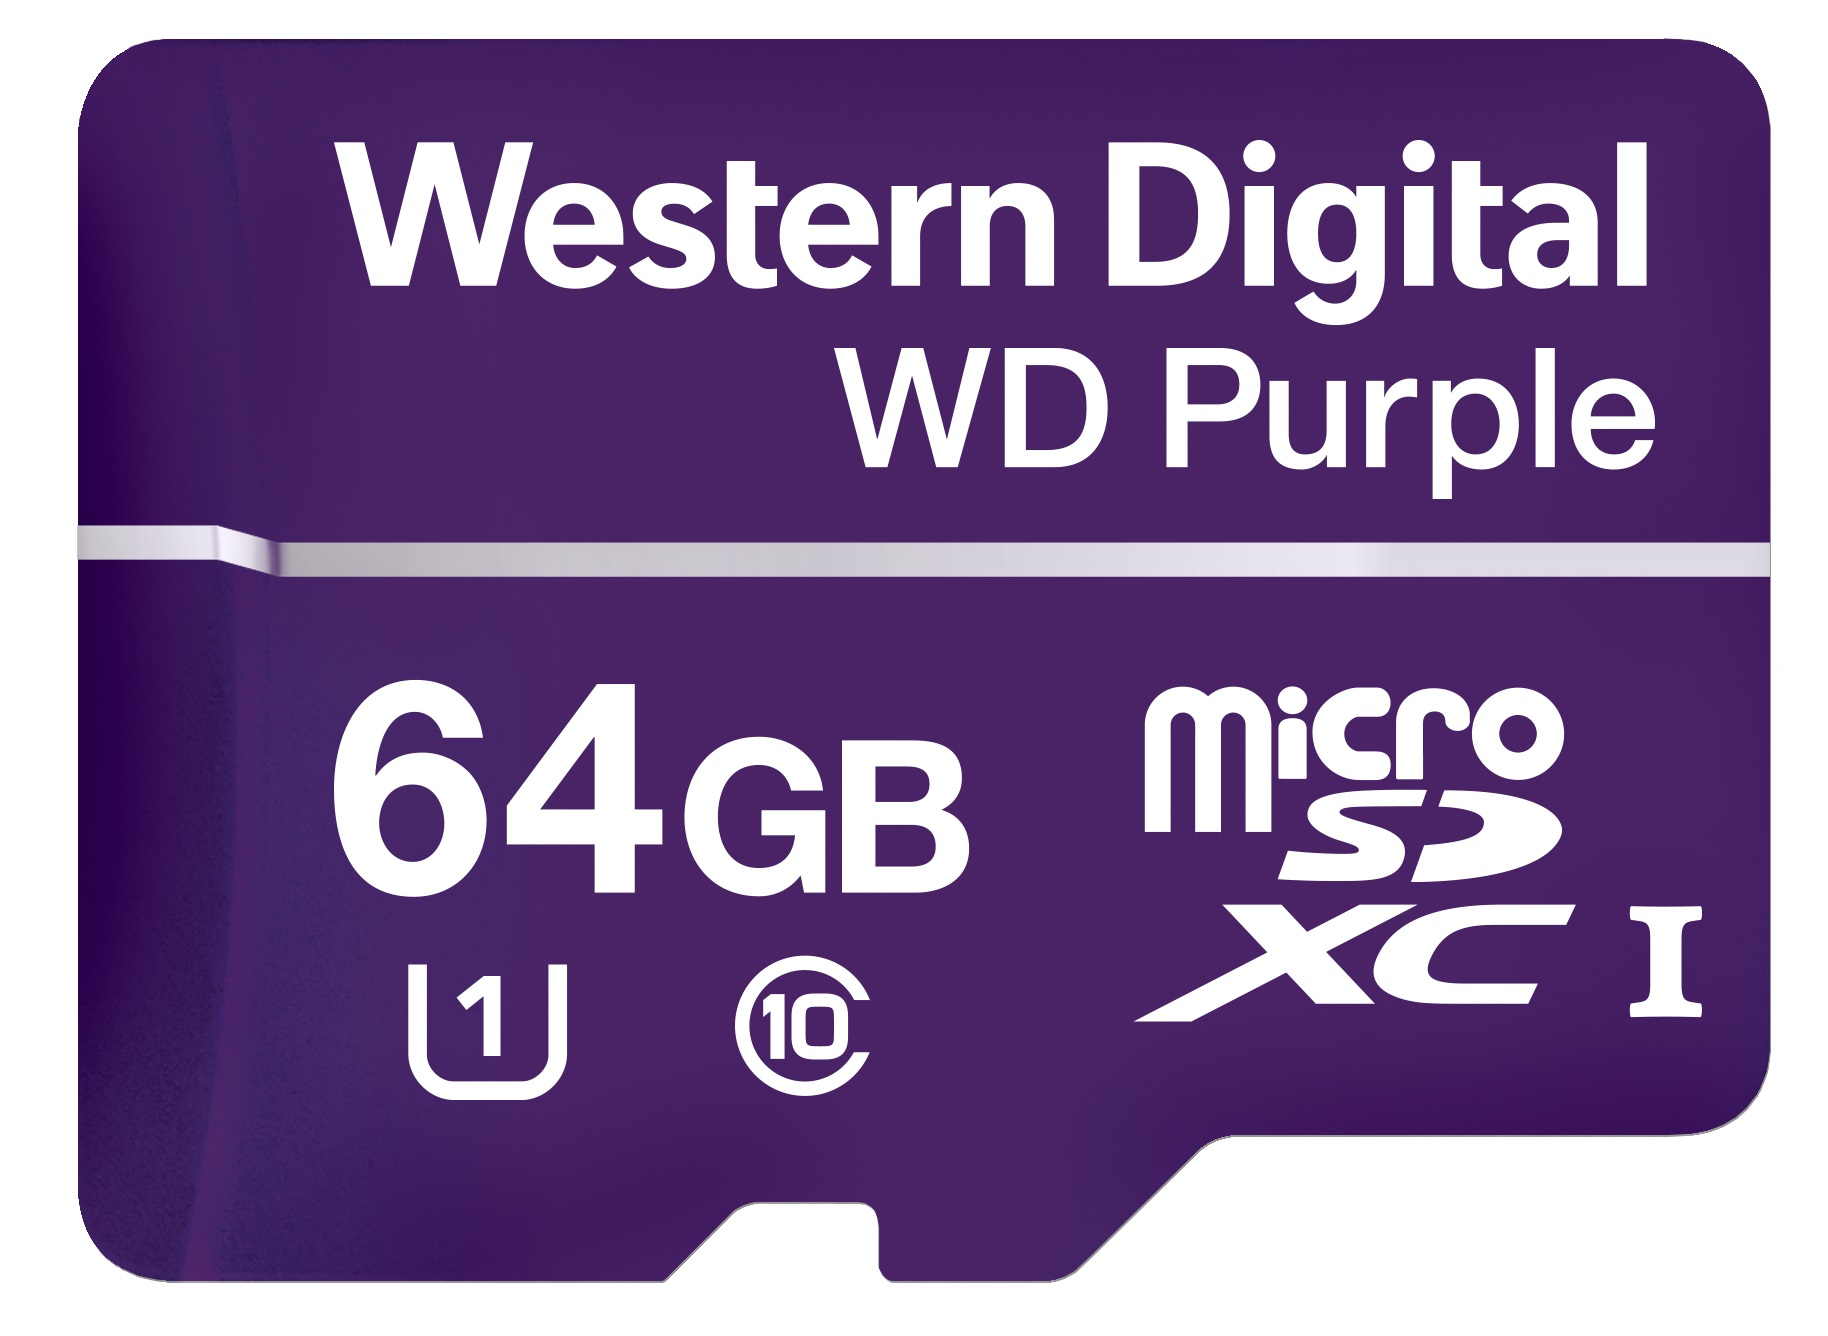 WESTERN DIGITAL PURPLE 64GB MICROSDXC CLASS 10 MEMORY CARD